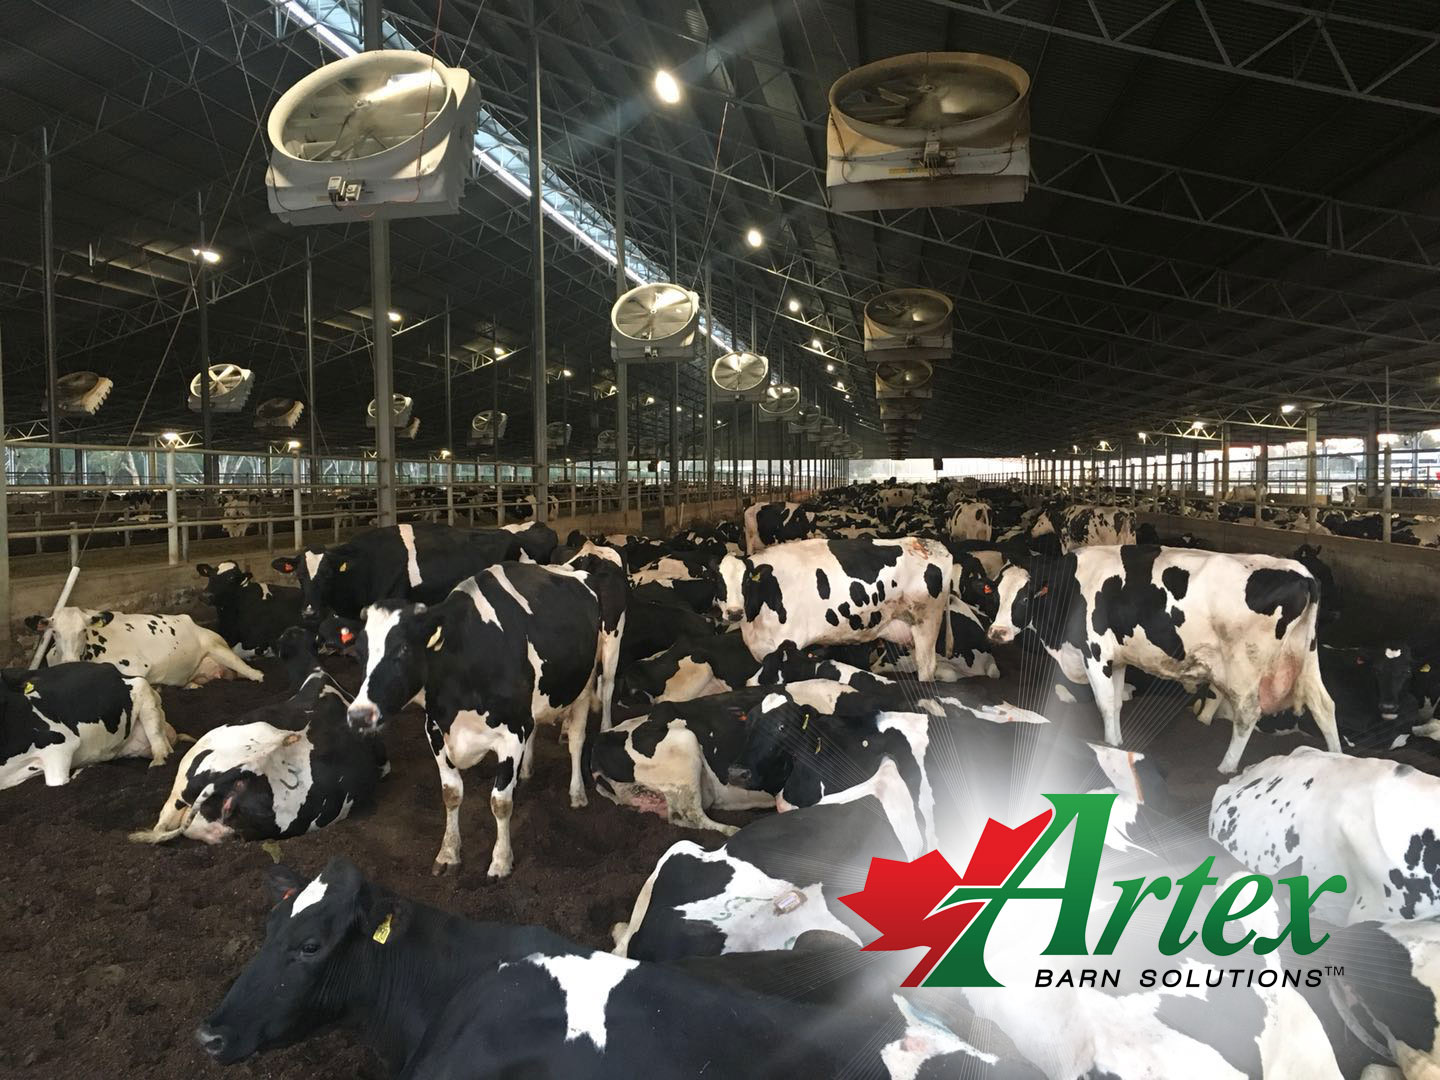 99.99% of Dairy Barns need Ventilation | The Artex Connection